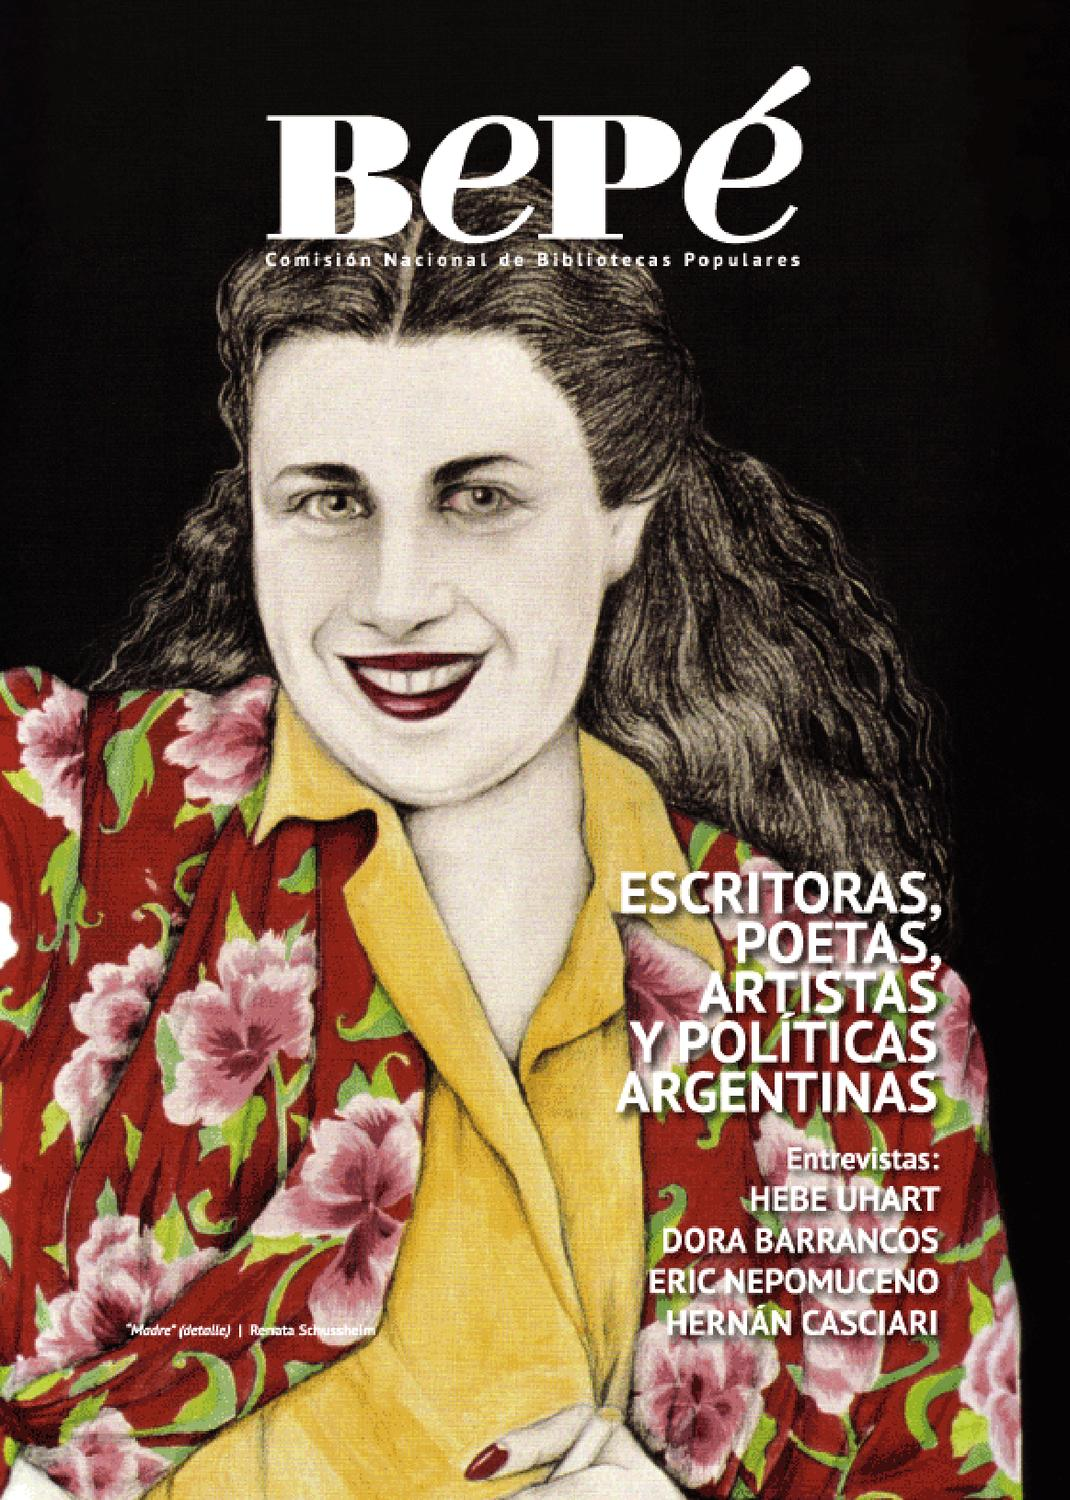 Revista BePé Nº 11 by Revista BePe - issuu 05677bc86c8